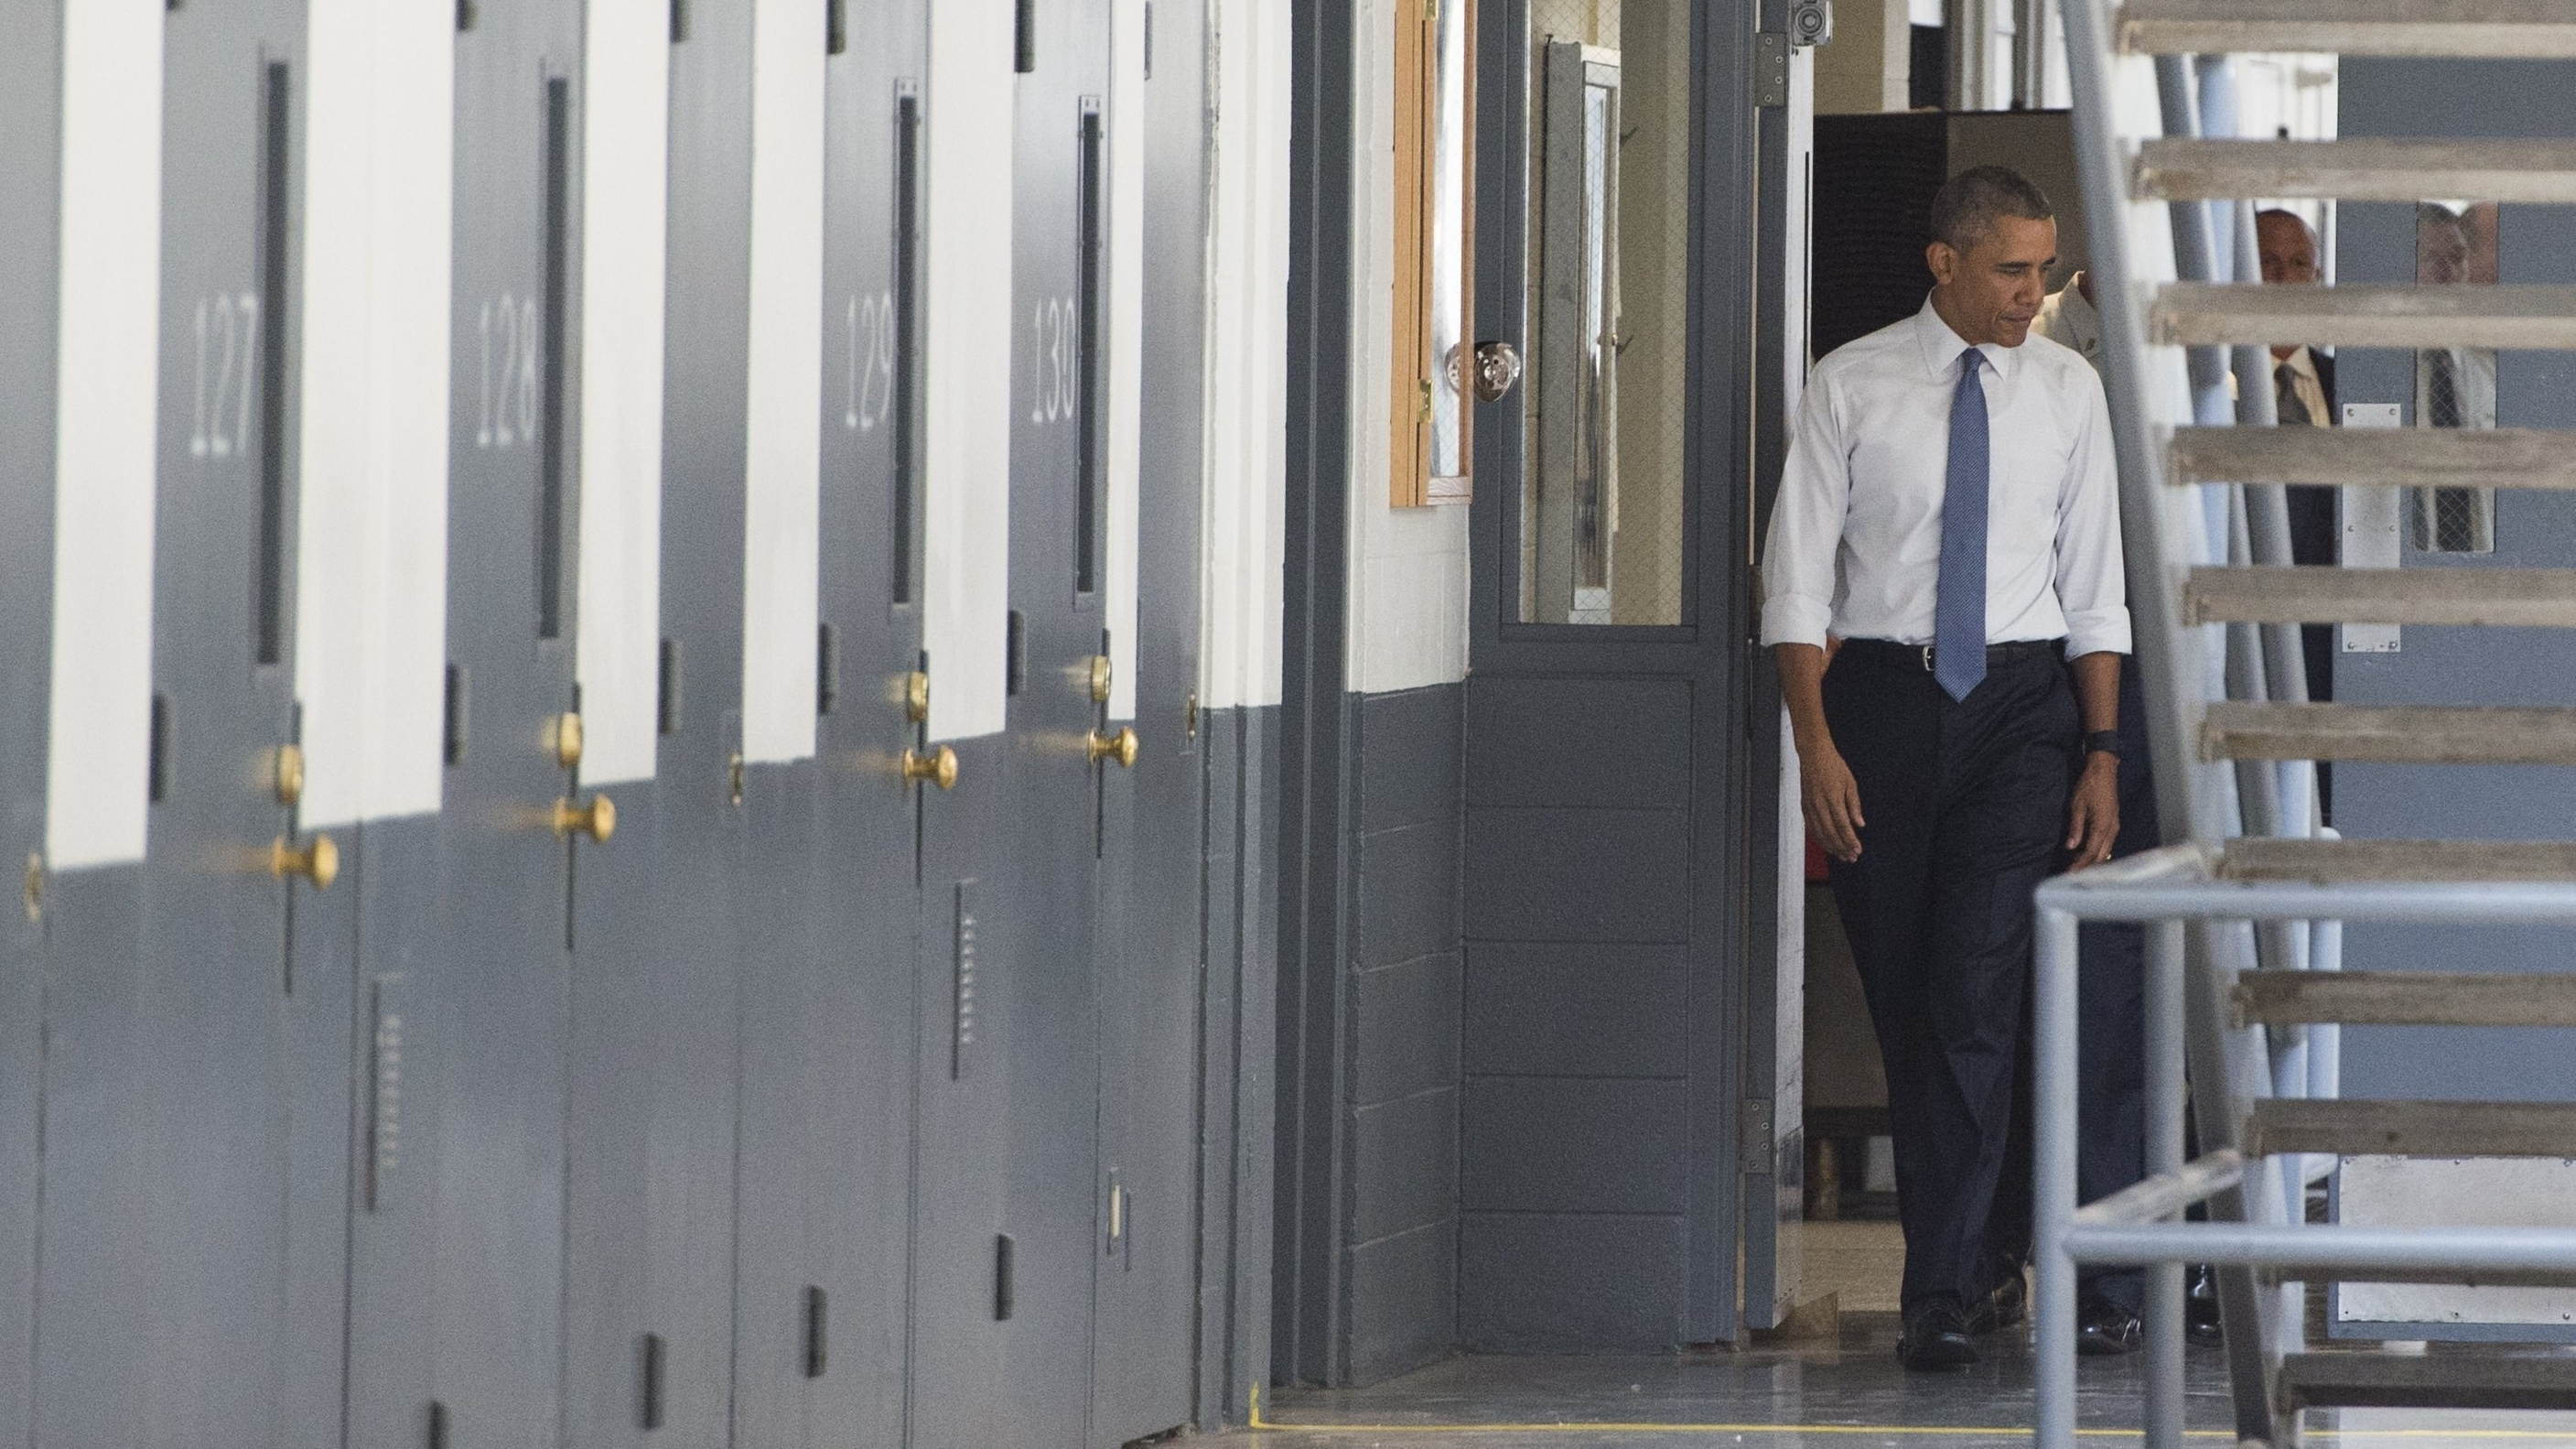 President Obama toured the El Reno Federal Correctional Institution in Oklahoma on Thursday and met with six inmates. Saul Loeb/AFP/Getty Images